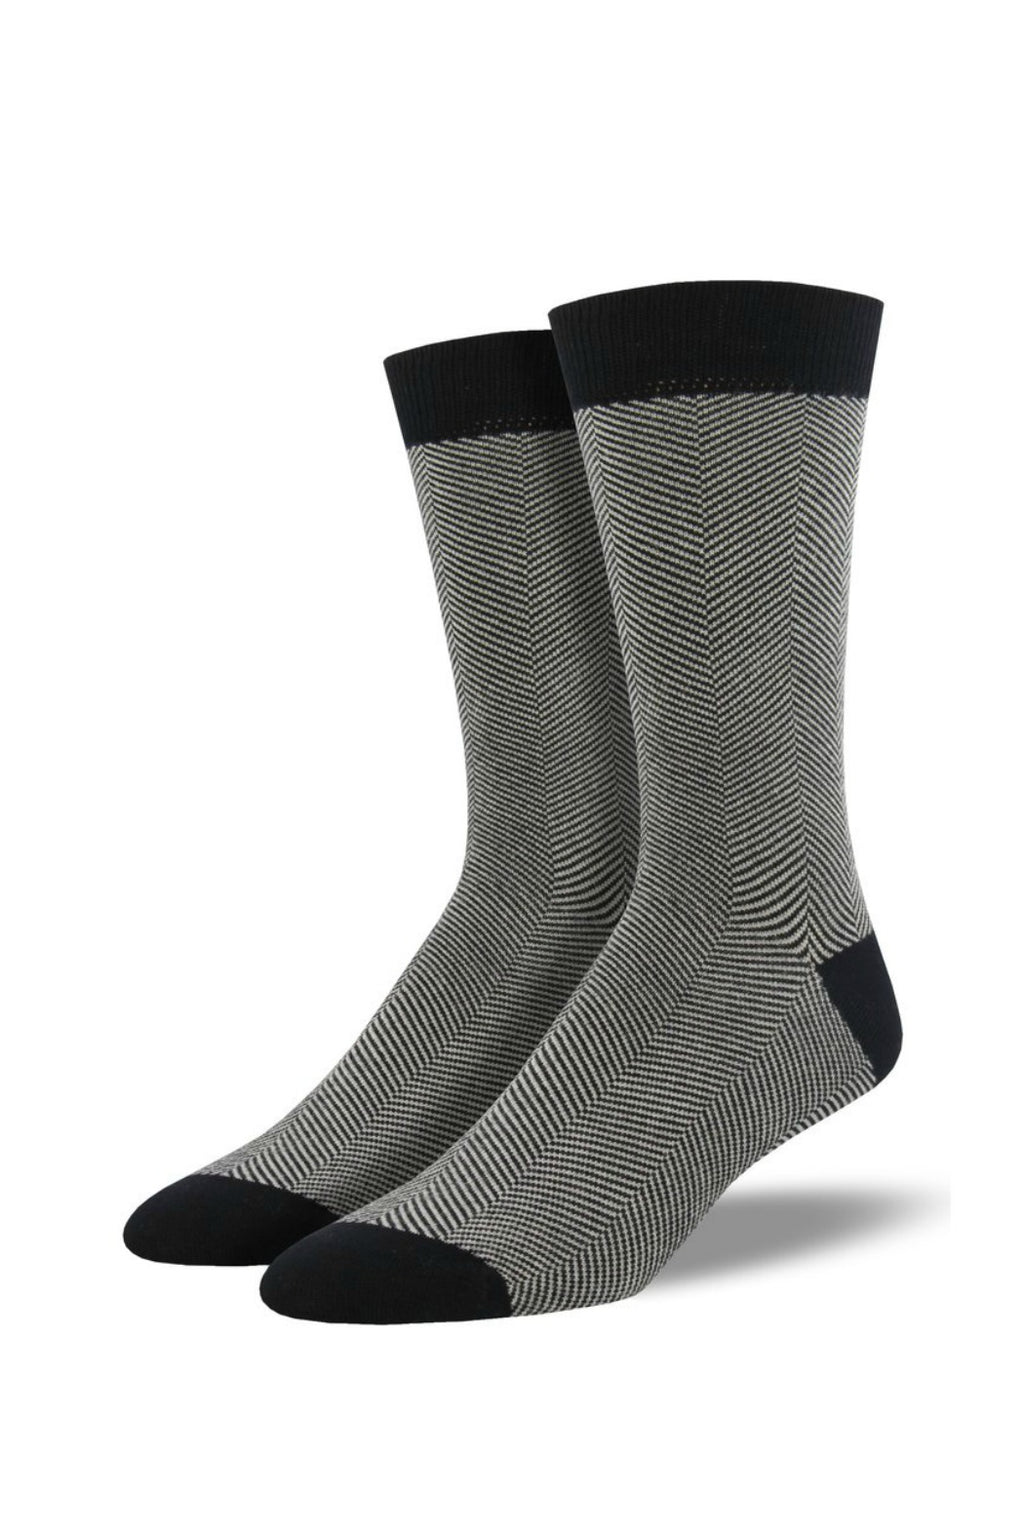 Socksmith Men's Bamboo Socks Solid - Herringbone Black